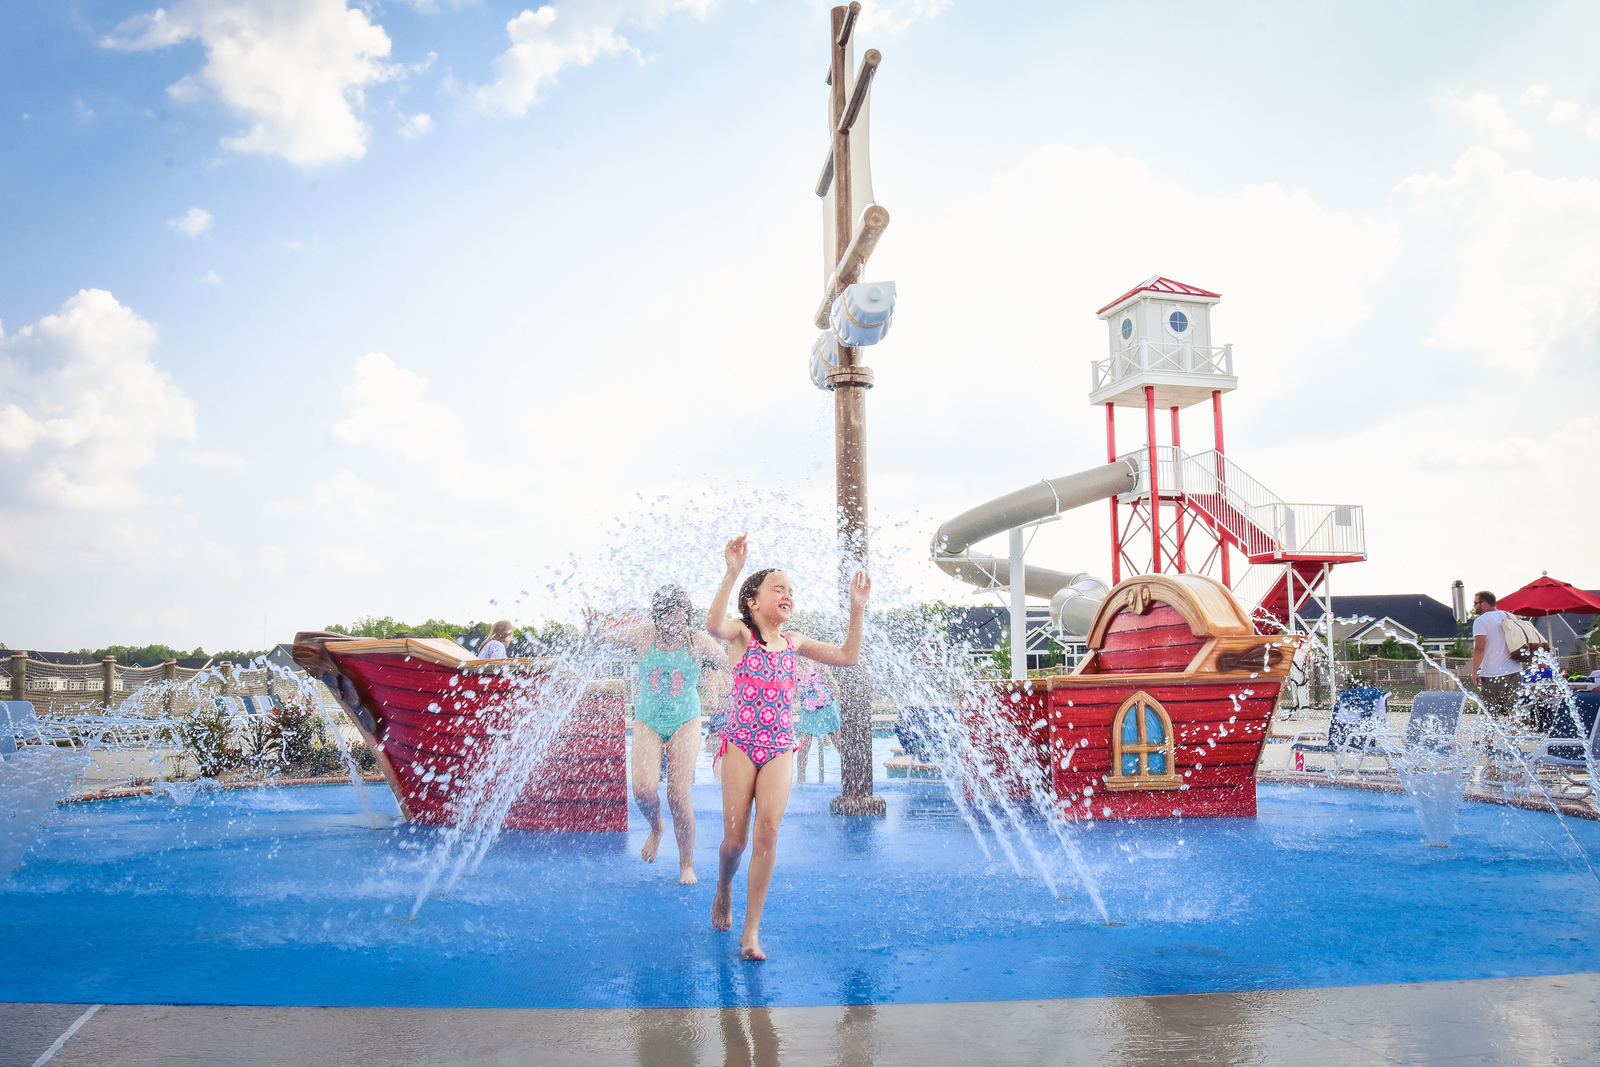 The kids will love the pool's splash area - the perfect play area for hot summer days.